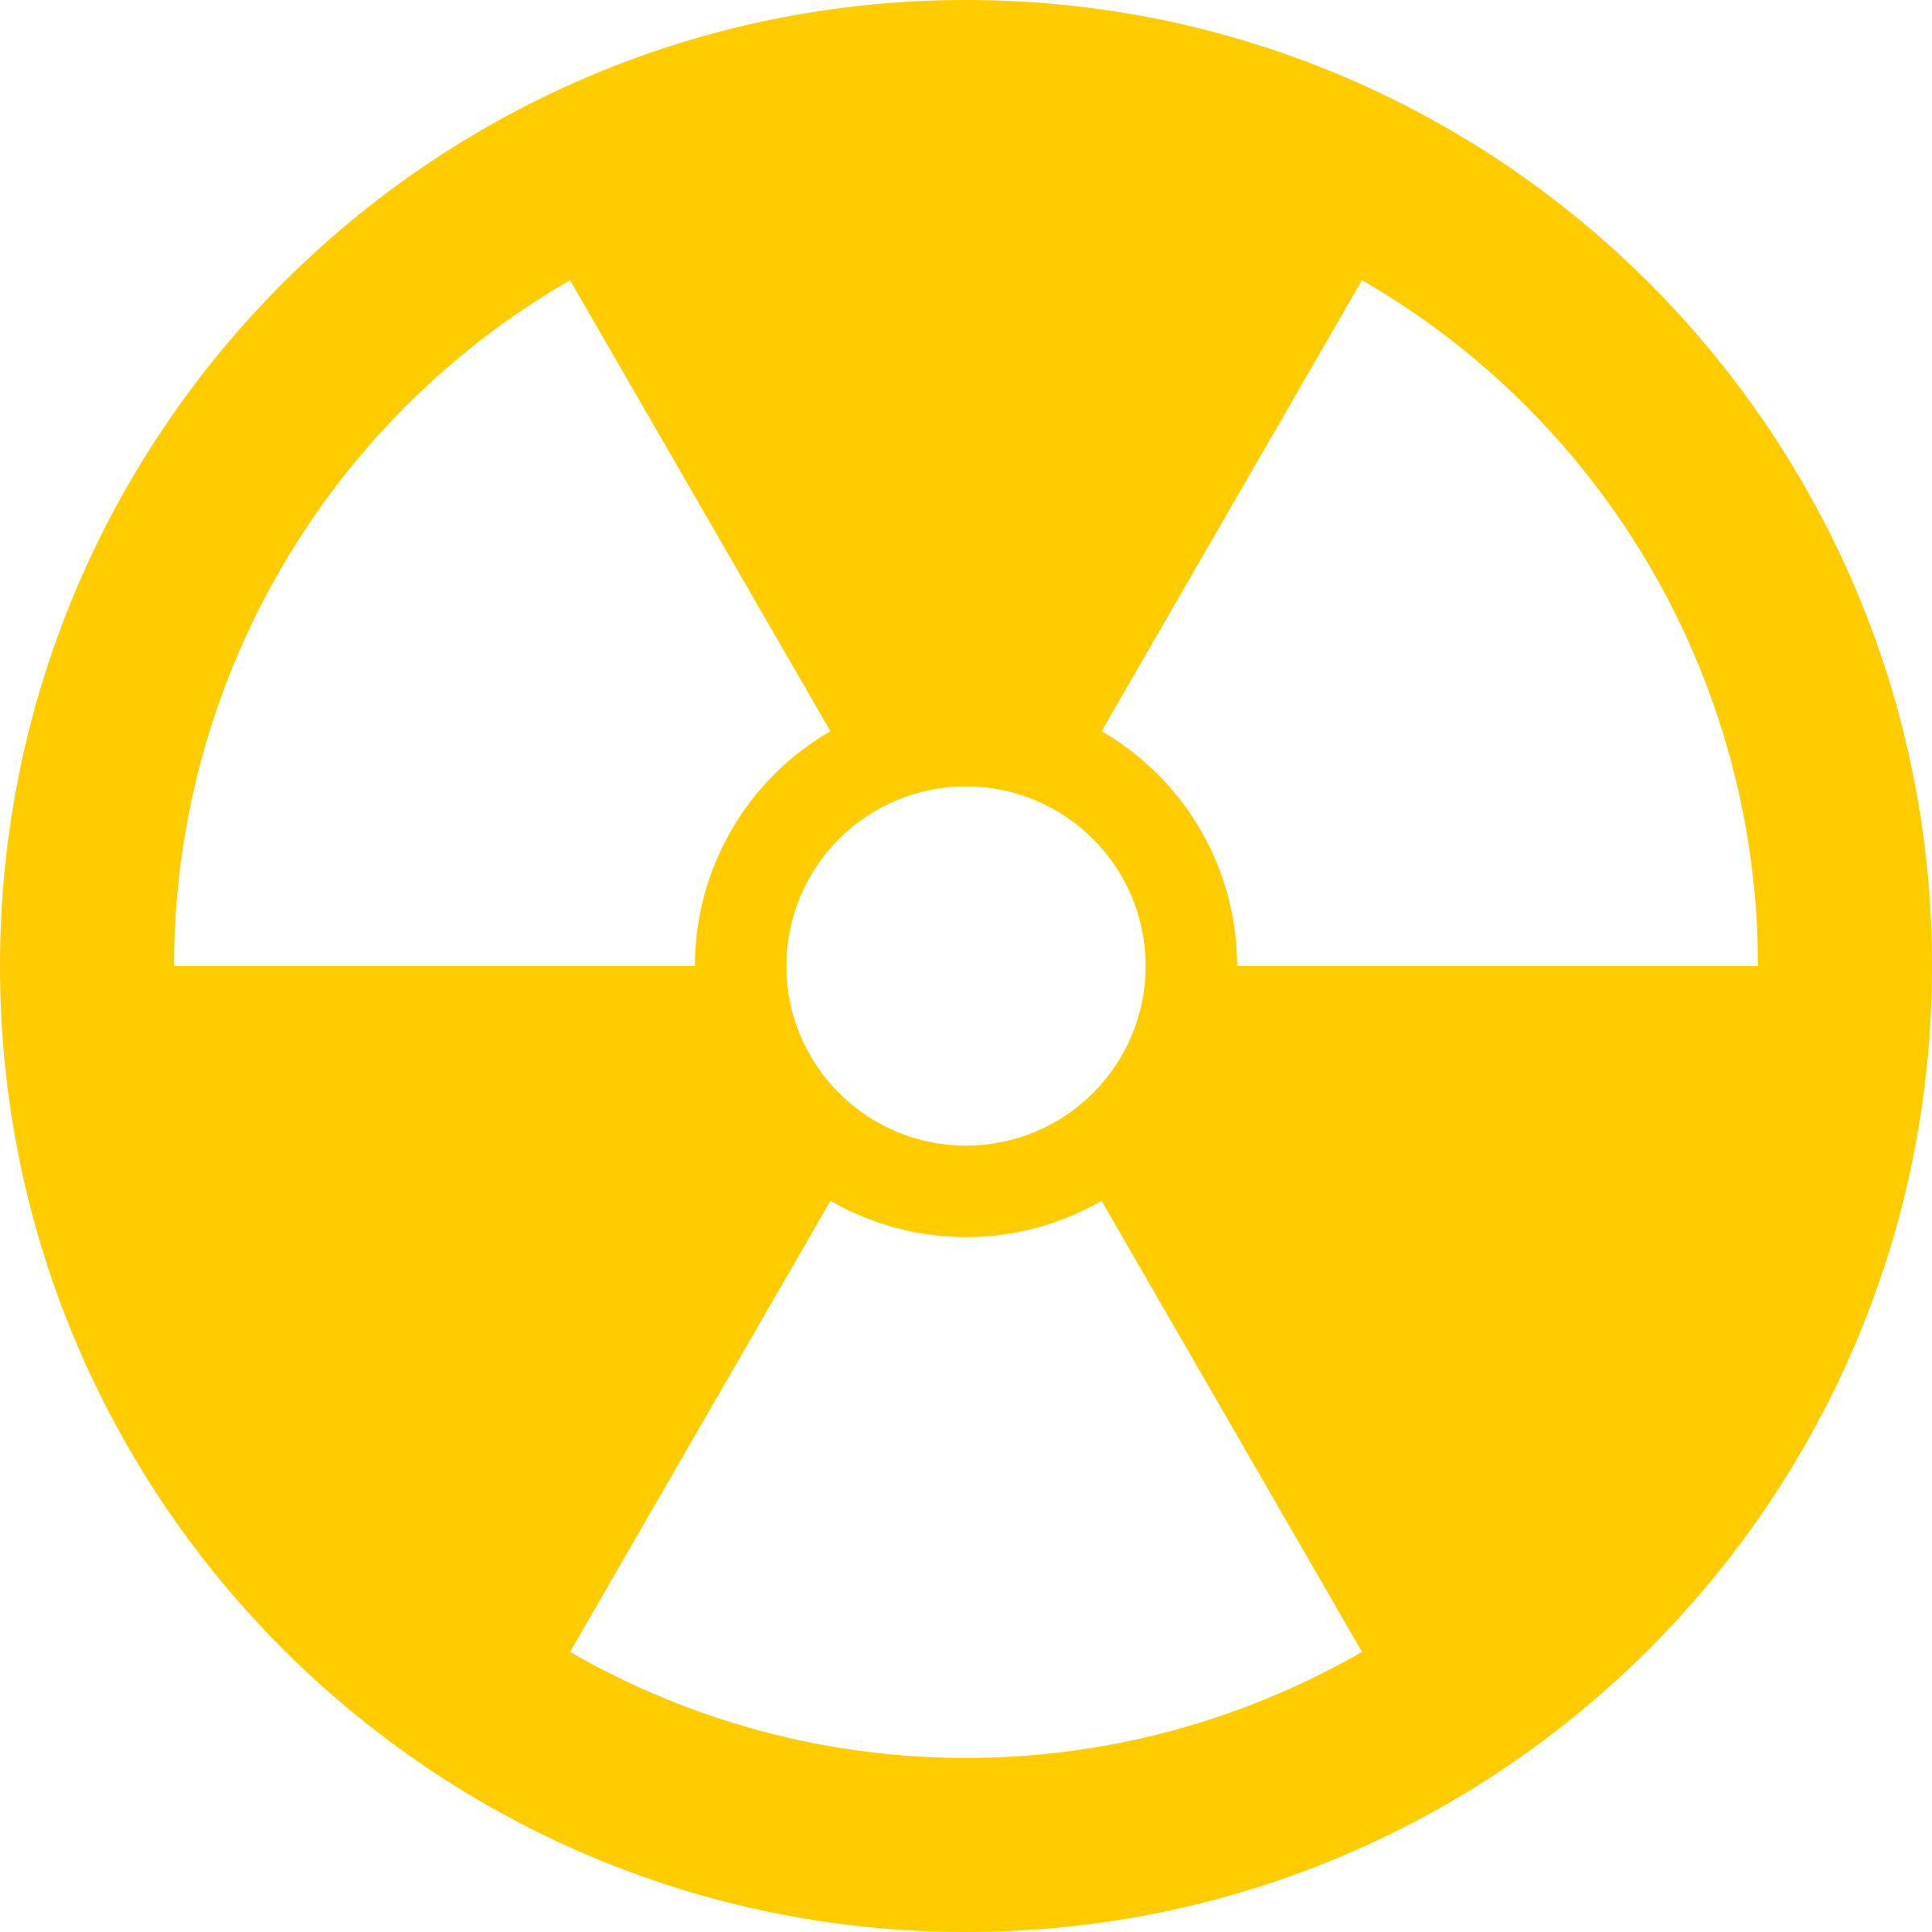 Radioactive clipart #6, Download drawings